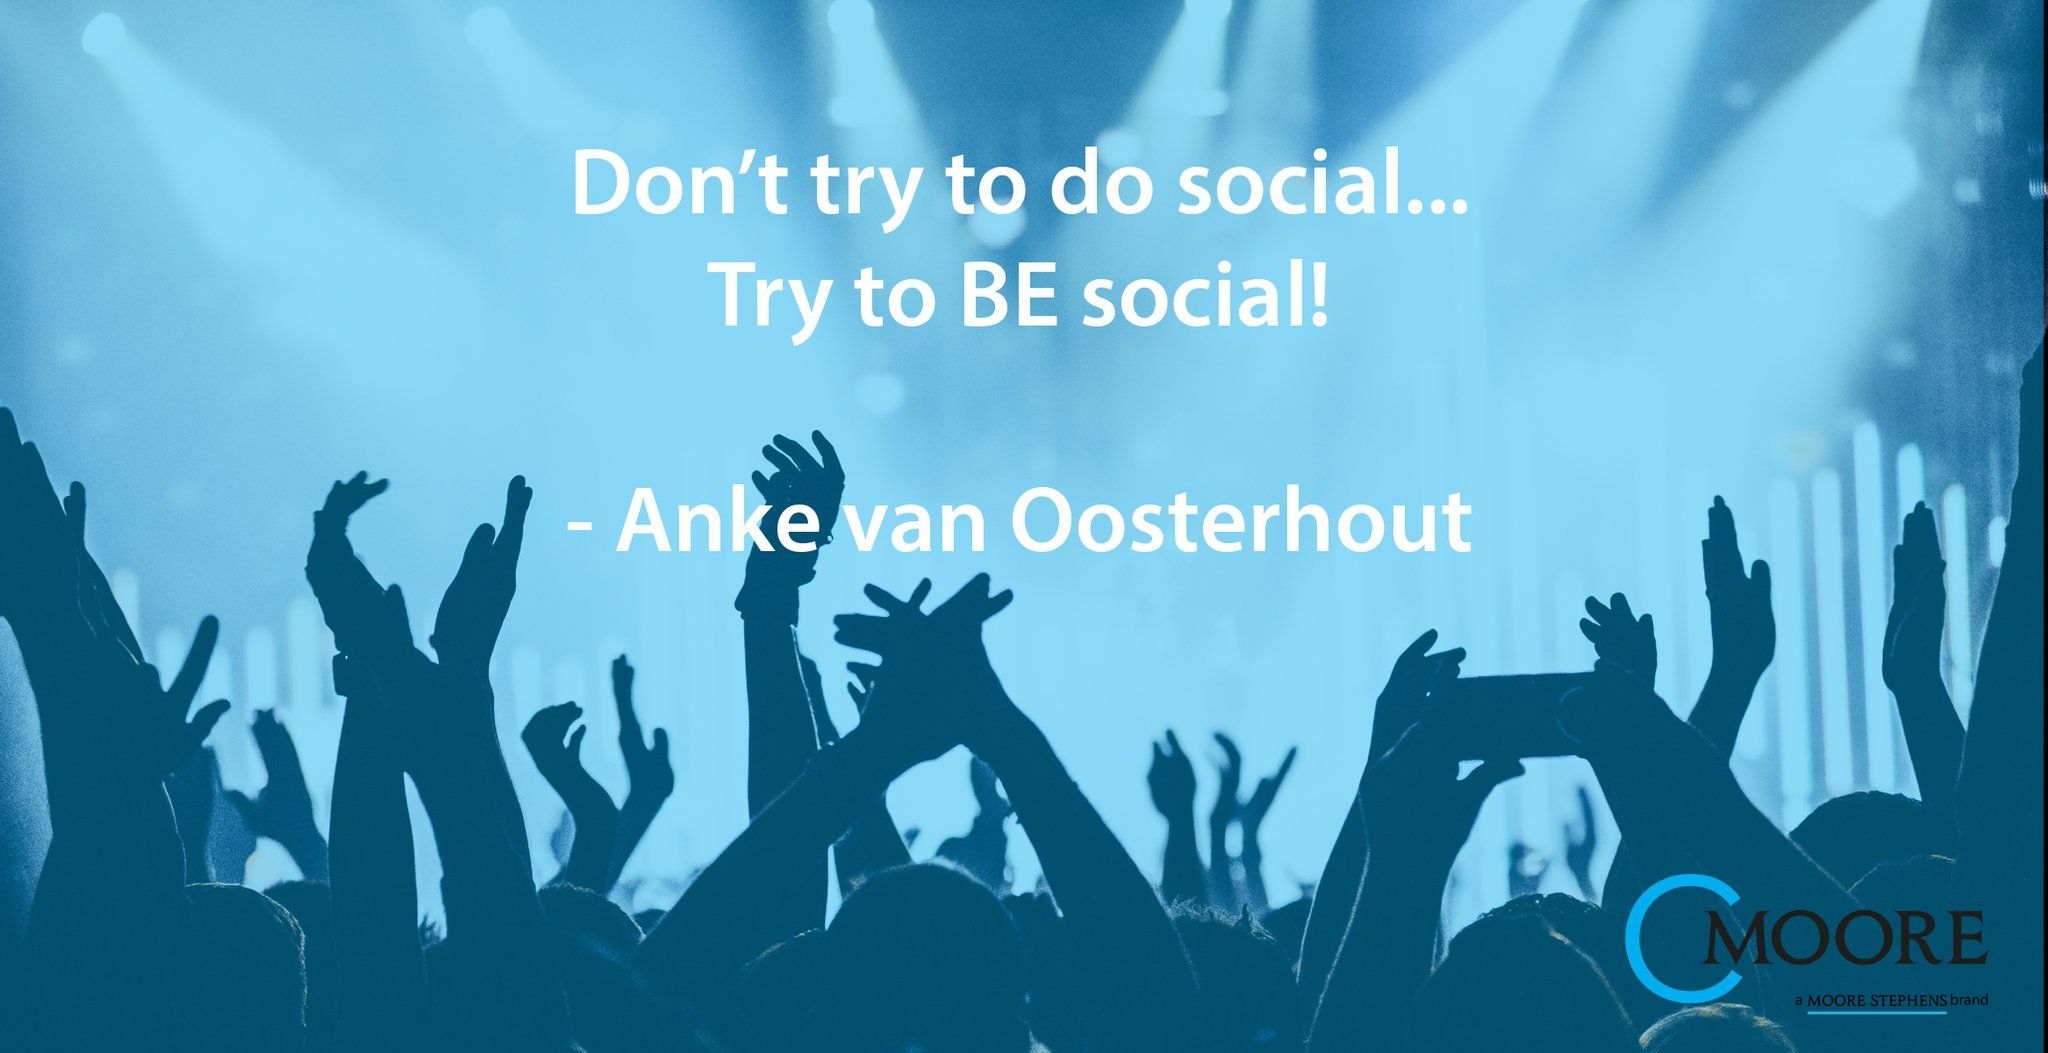 Don't try to do social, try to BE social! Anke van